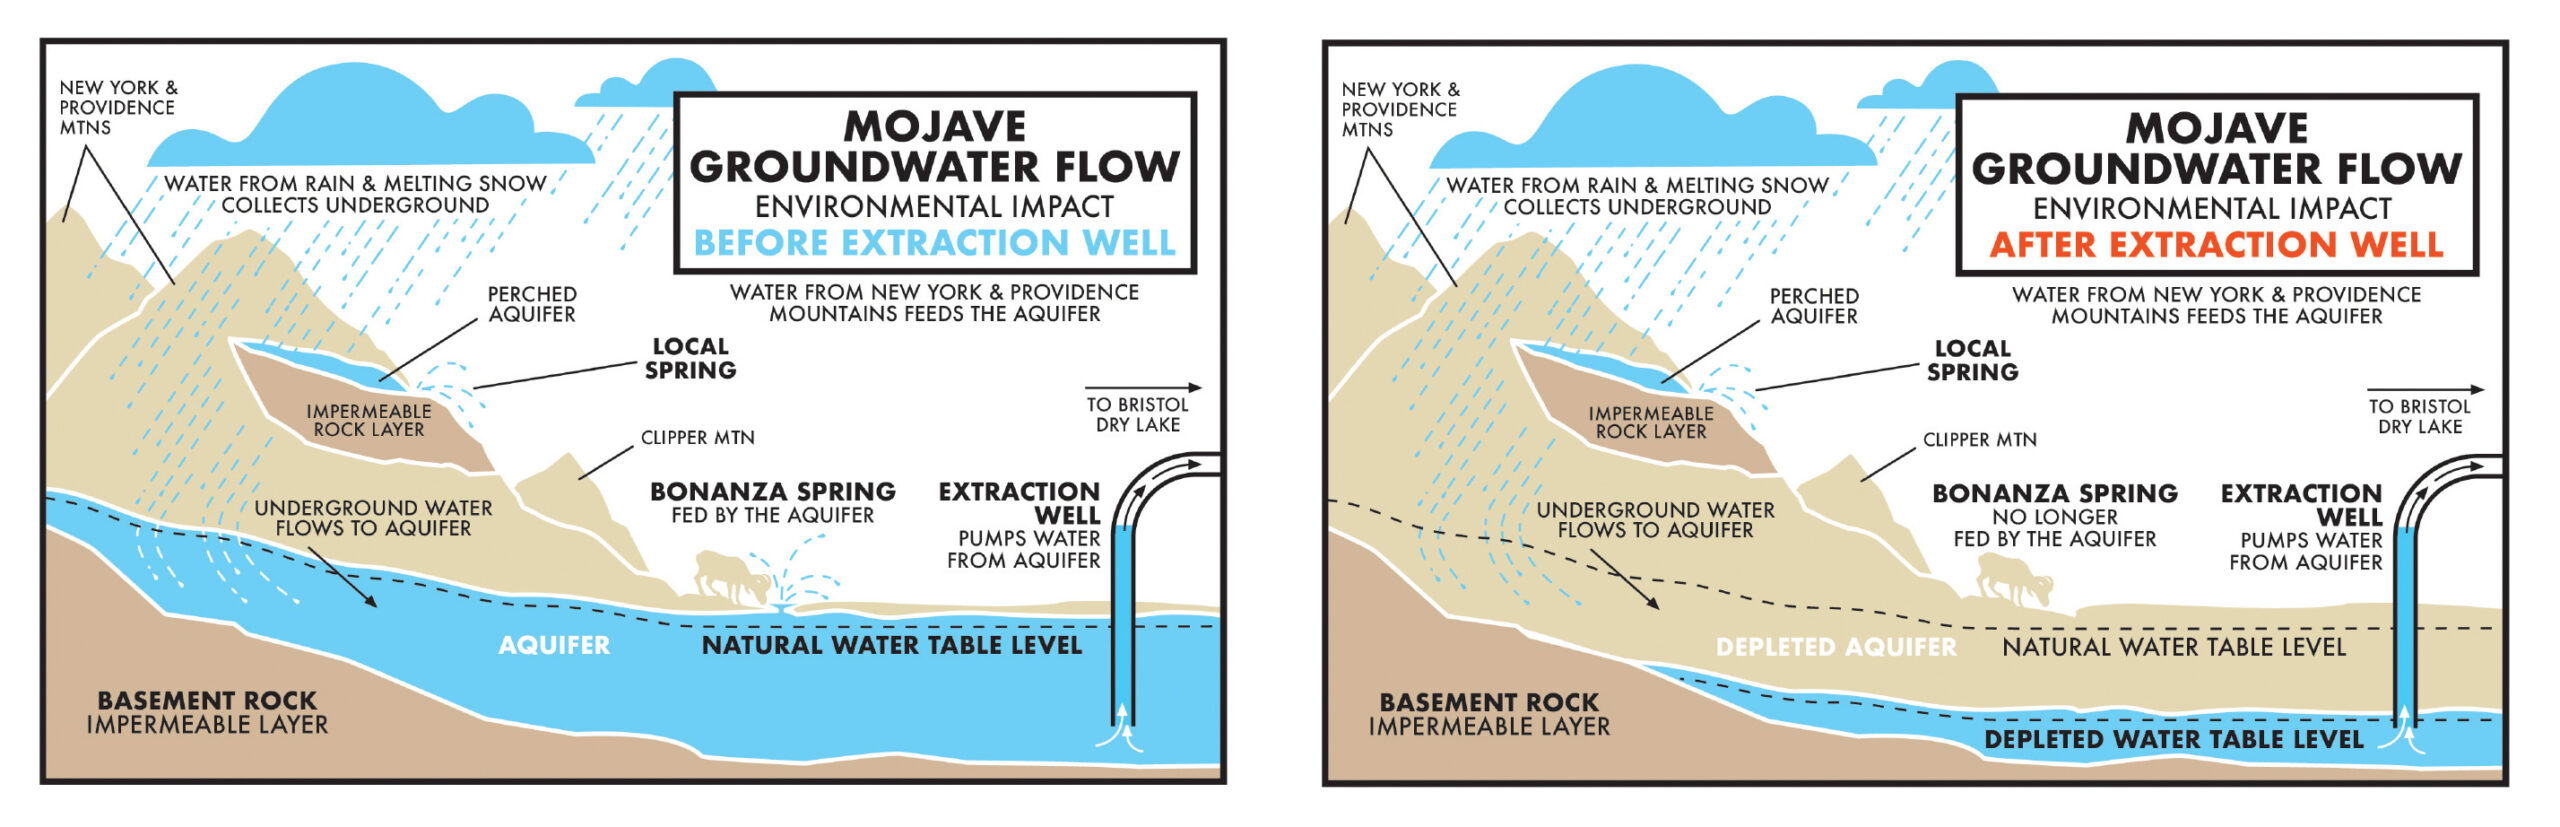 Subsurface Groundwater in the Fenner Basin. Illustration by MDLT.